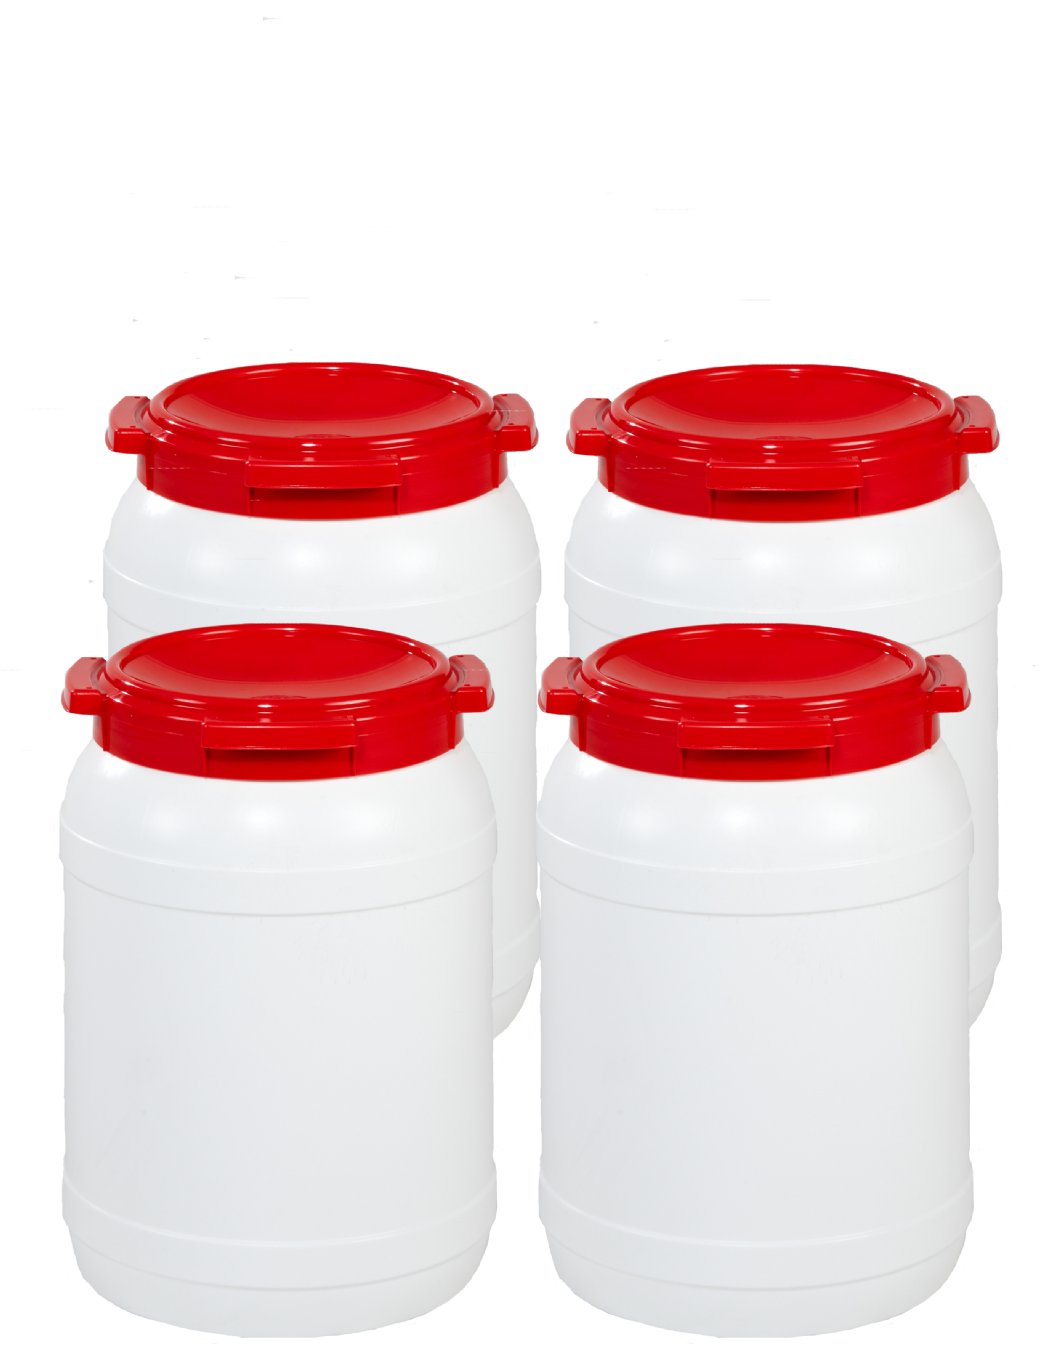 20 Litre Wide Neck Plastic Drum - Pack of 4 Drums